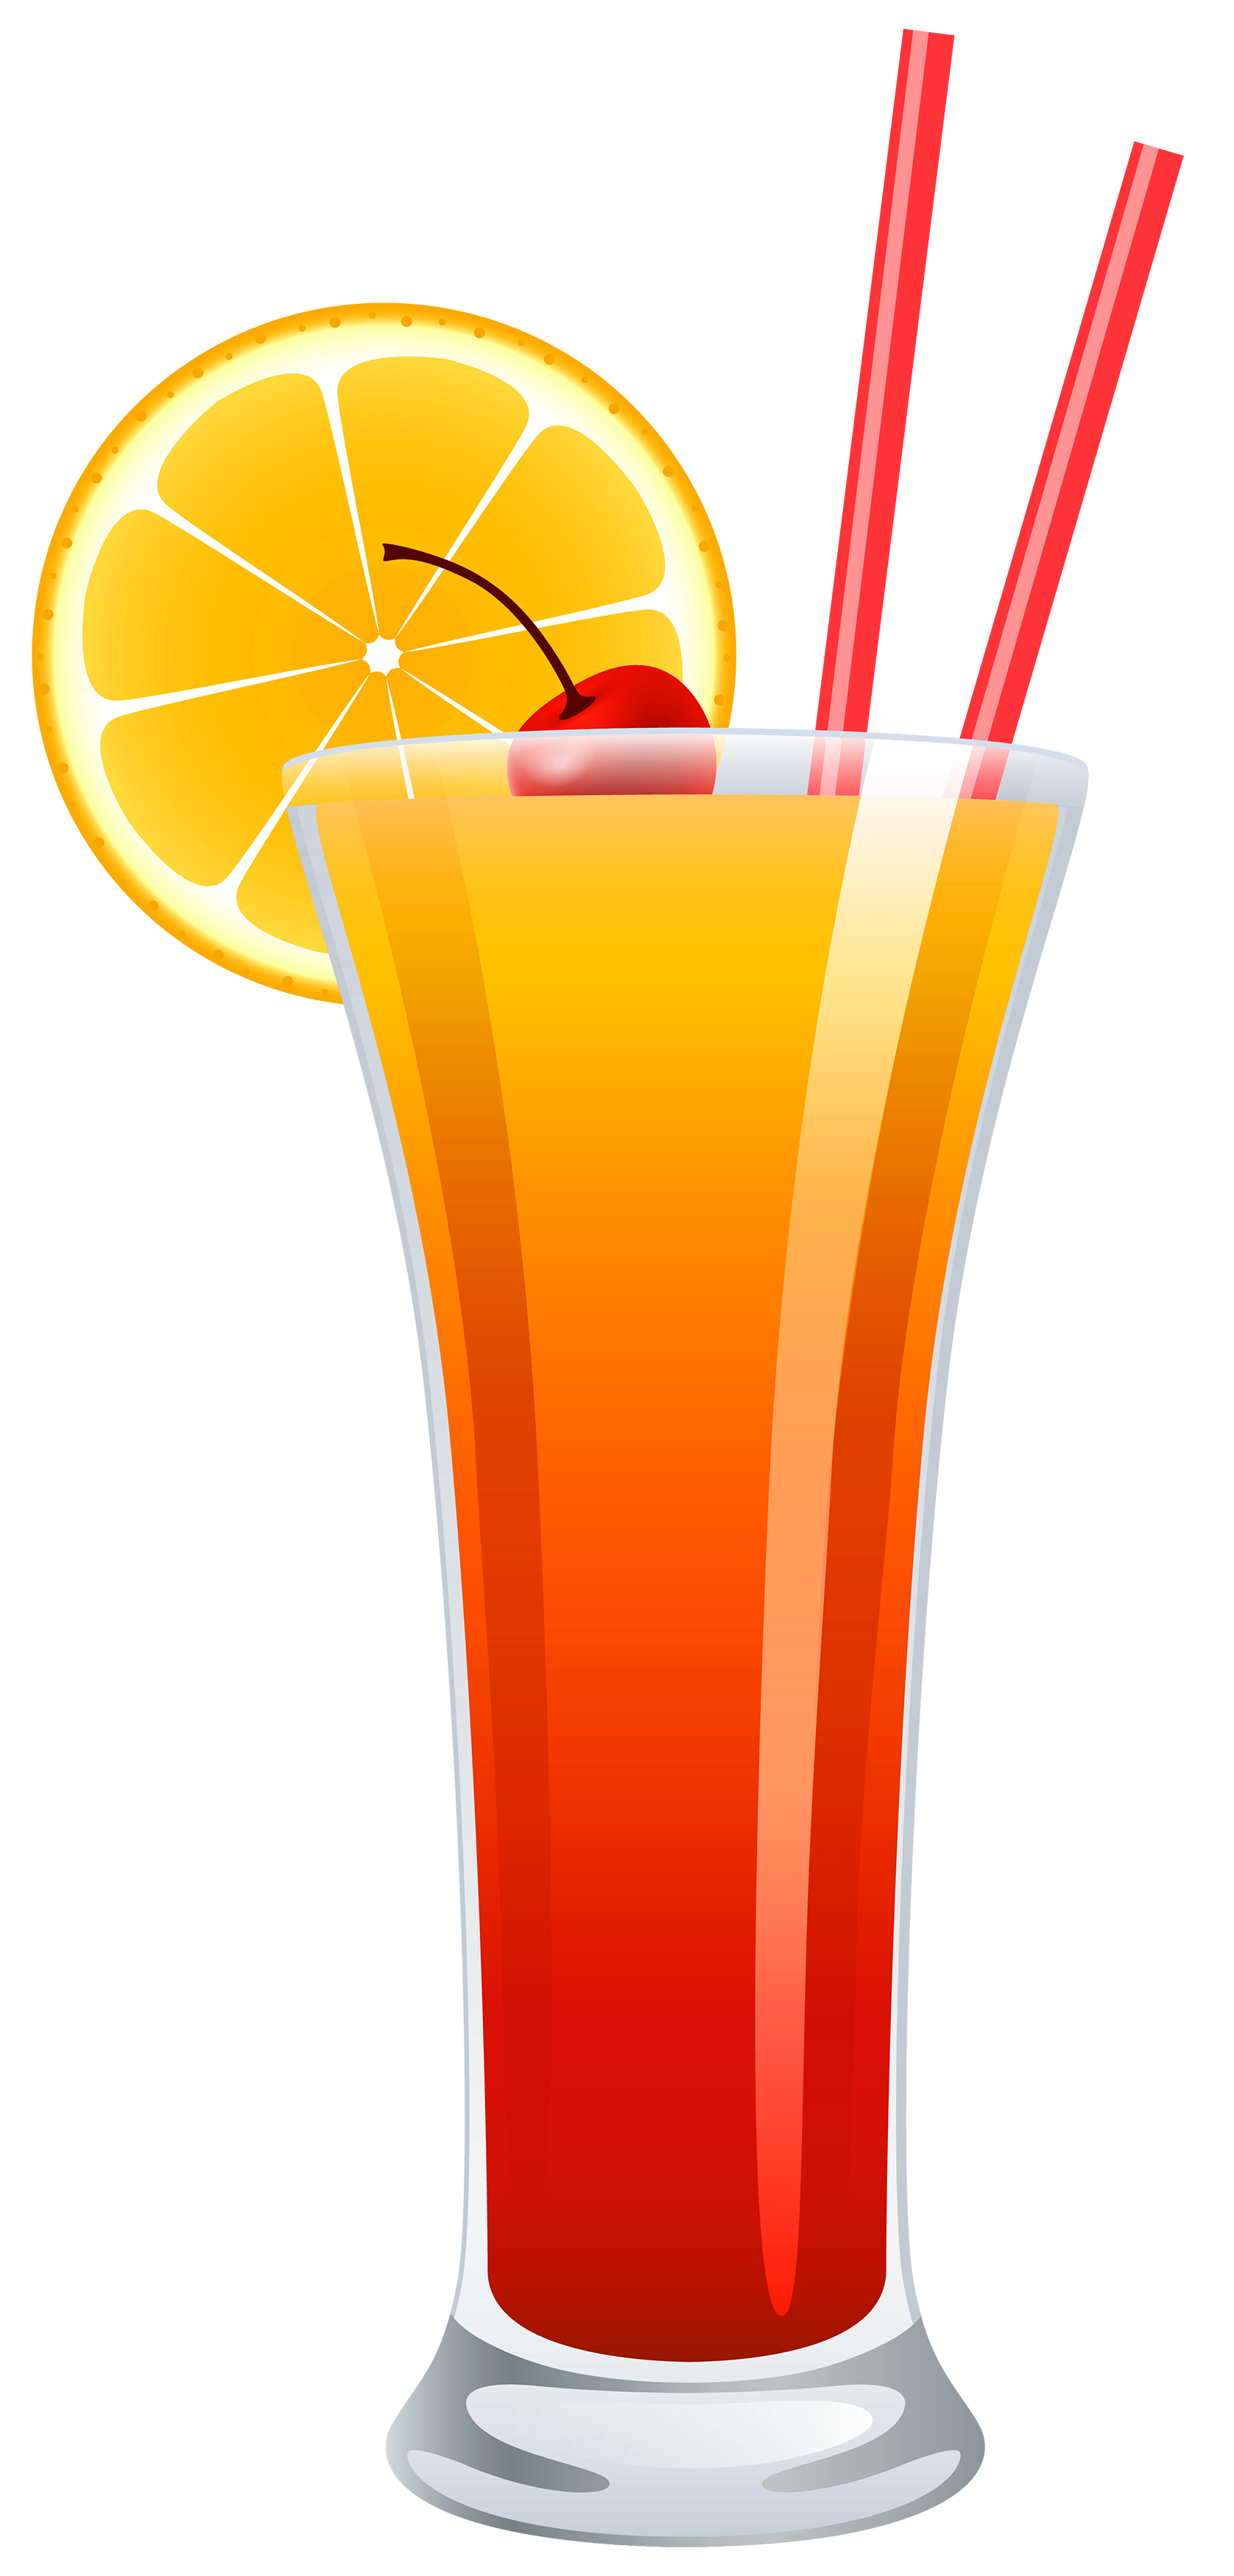 Sun with a drink clipart graphic download Cocktail PNG images free download graphic download